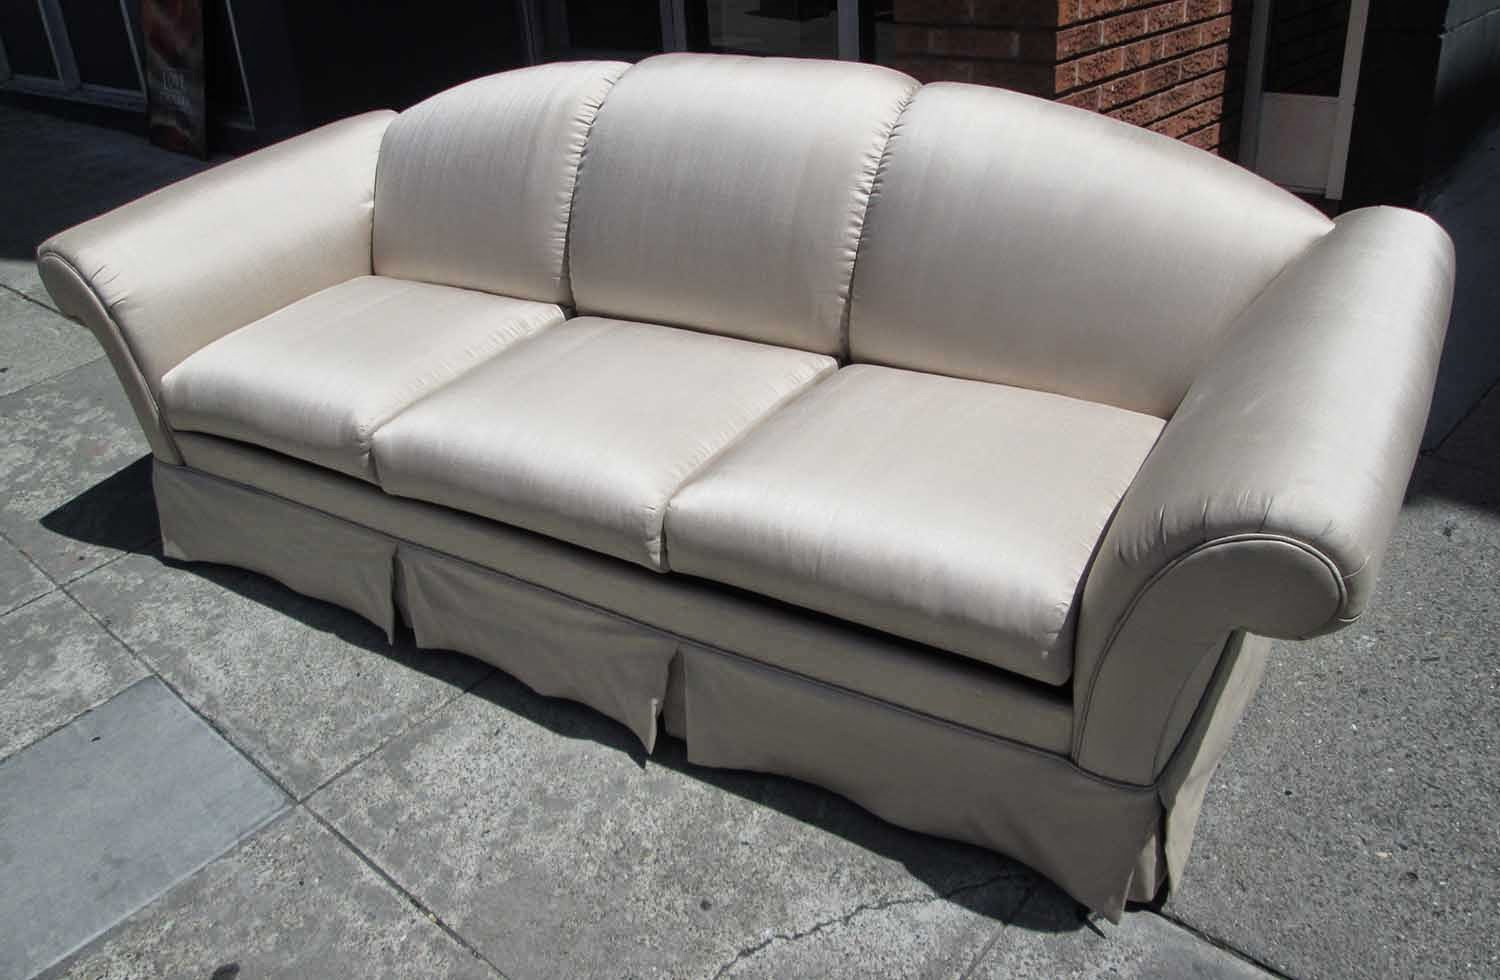 Sealy Posturepedic Chair Uhuru Furniture And Collectibles Sold Silky Sofa Sleeper